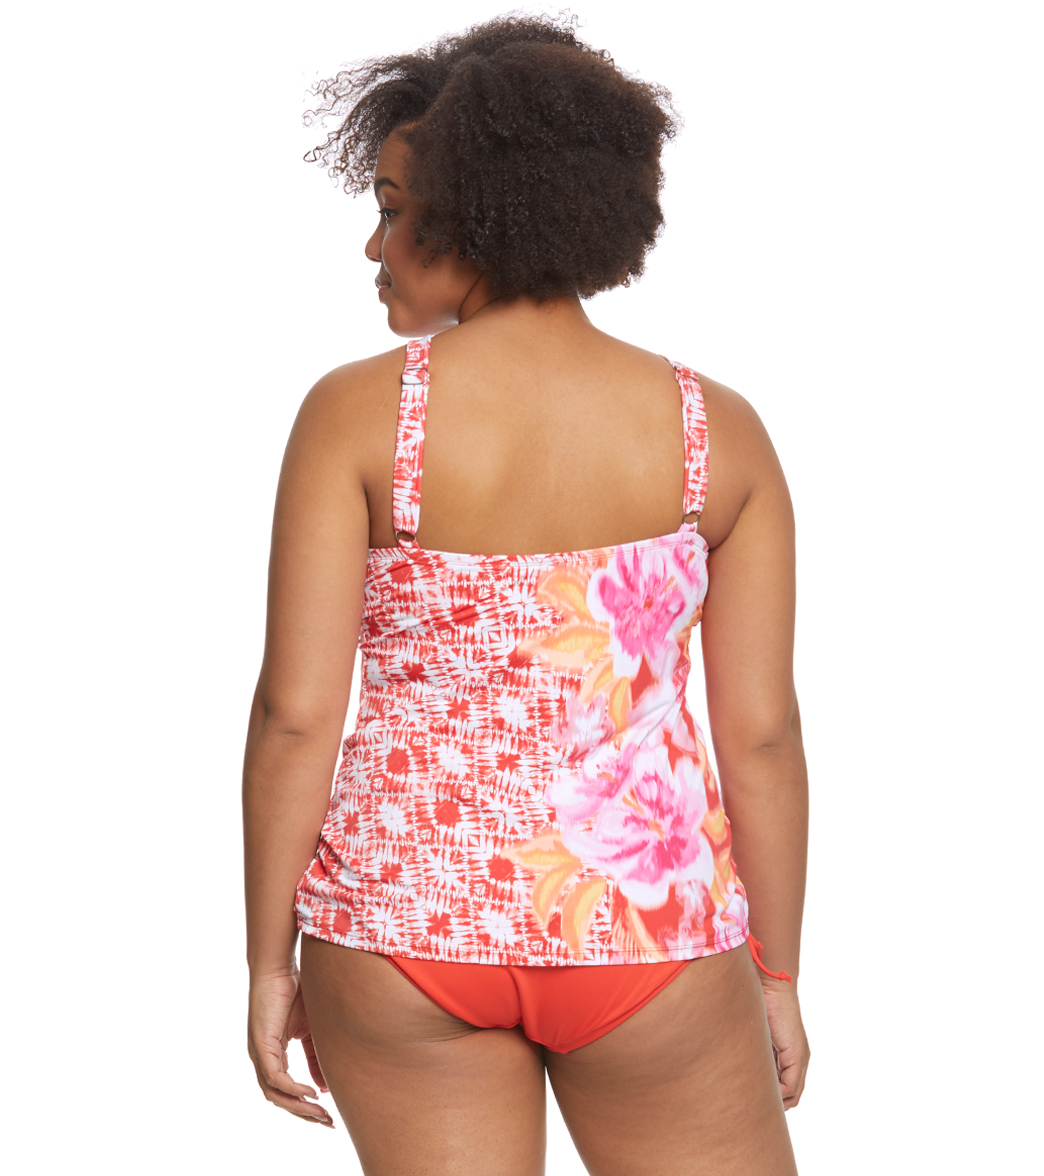 c8240f92453d8 Beach House Plus Size Bungalow Bay Border Blair Tankini Top at ...